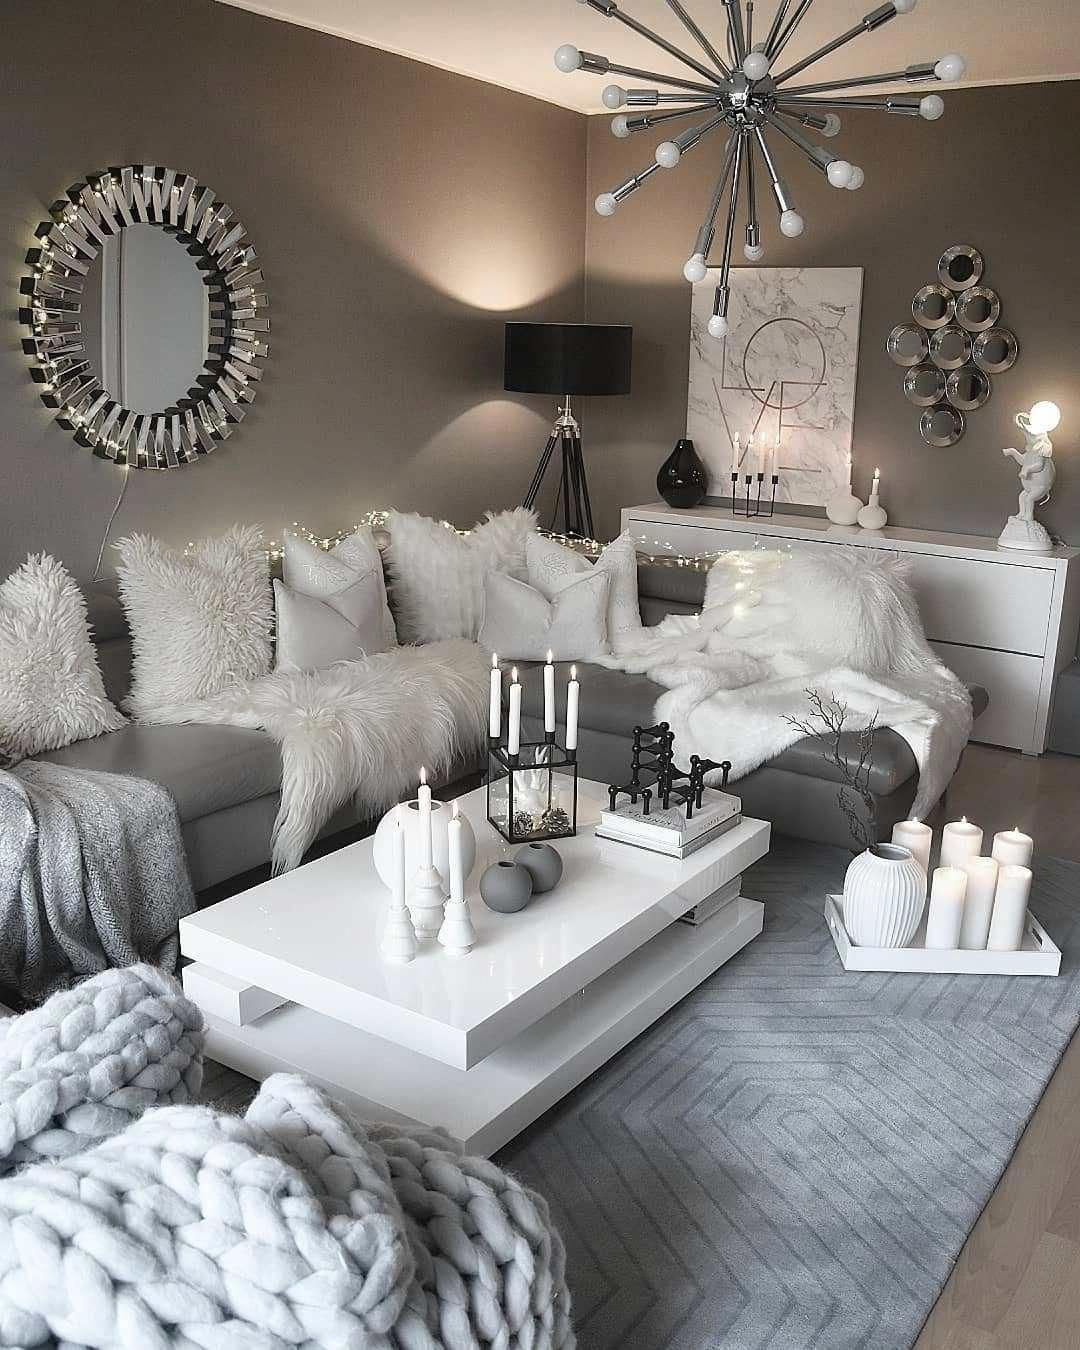 Recreate This White And Grey Cozy Living Room Decor Livingroom Decor Livingroomins Living Room Decor Apartment Living Room Decor Gray Living Room Decor Cozy White gray living room